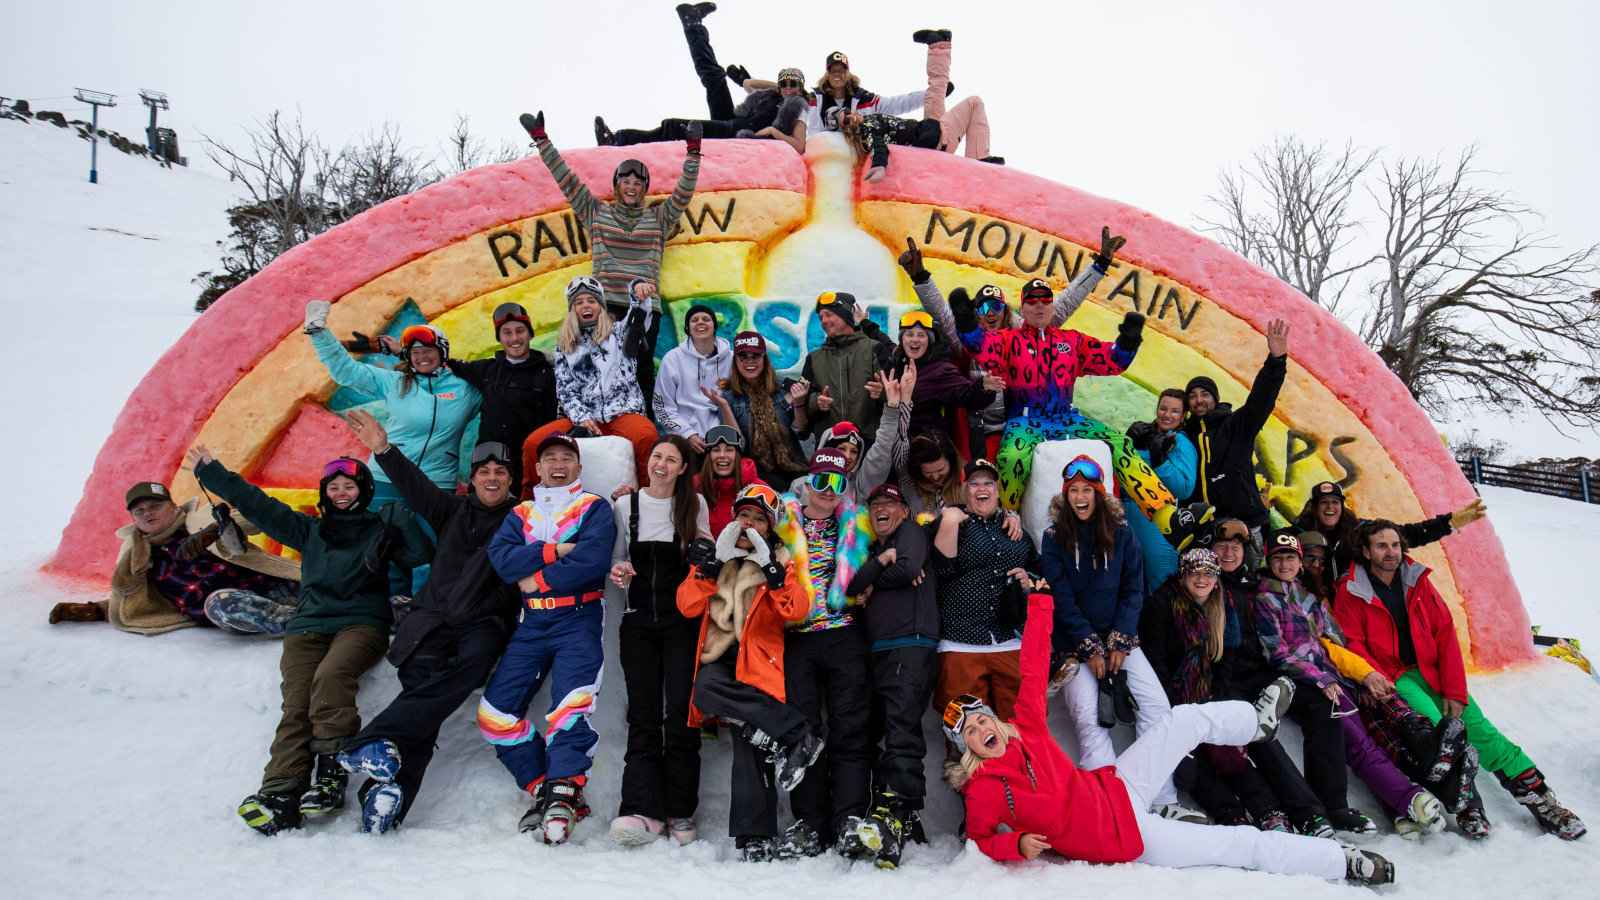 Australia's other gay ski event is the fabulous Rainbow Mountain which takes place at Thredbo in New South Wales